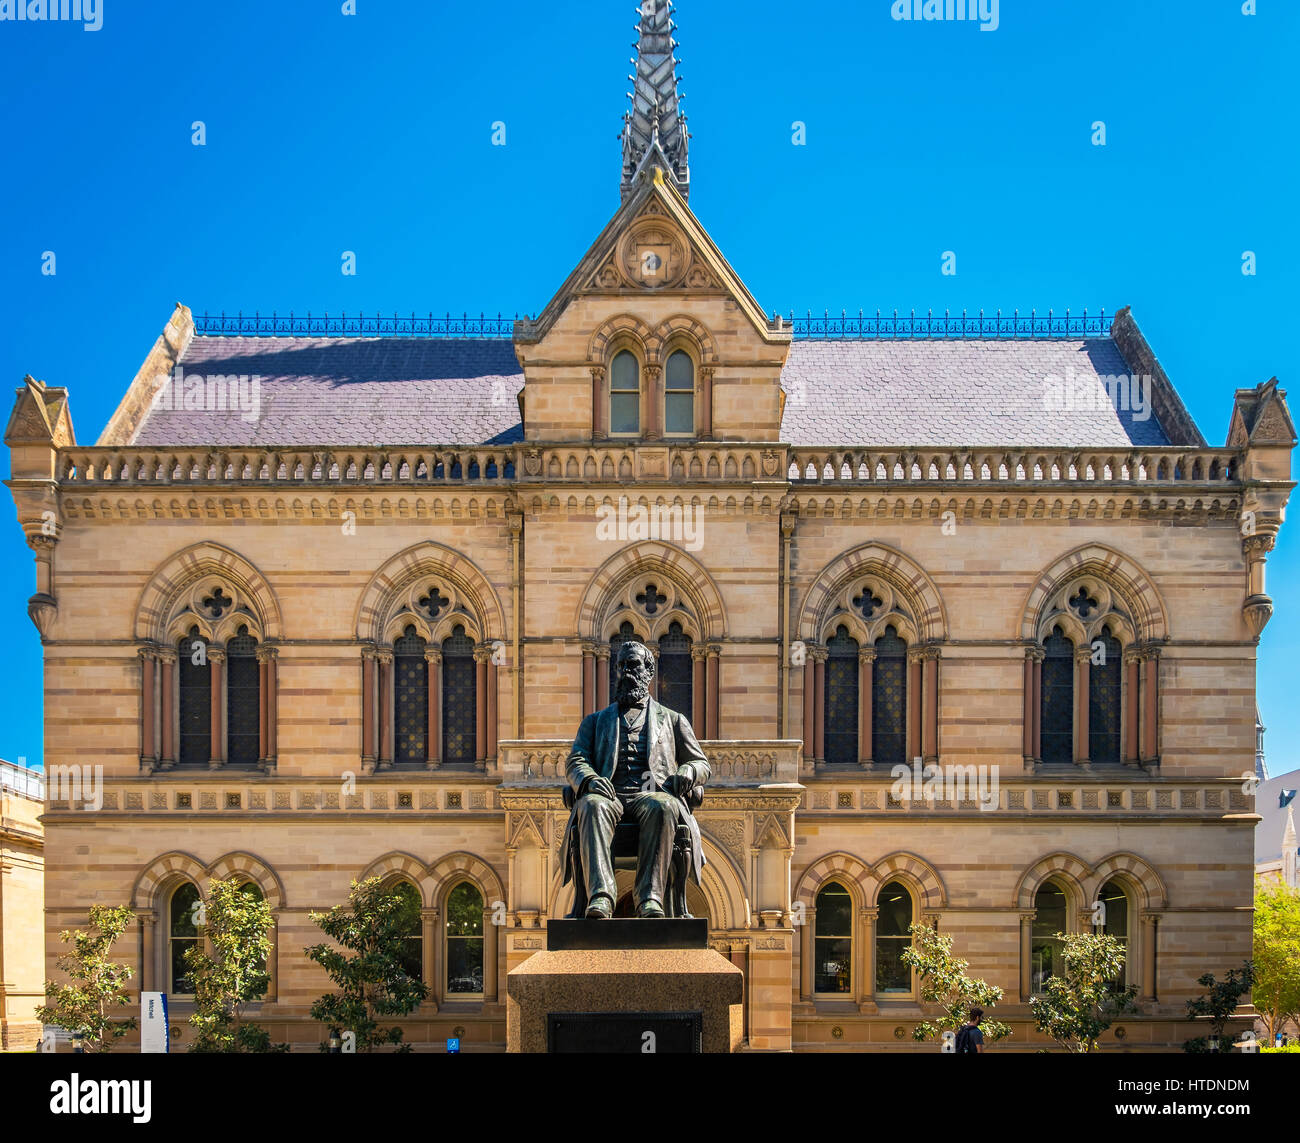 Adelaide, Australien - 11. November 2016: The University of Adelaide – Mitchell Gebäude auf North Terrace in Adelaide Stockfoto